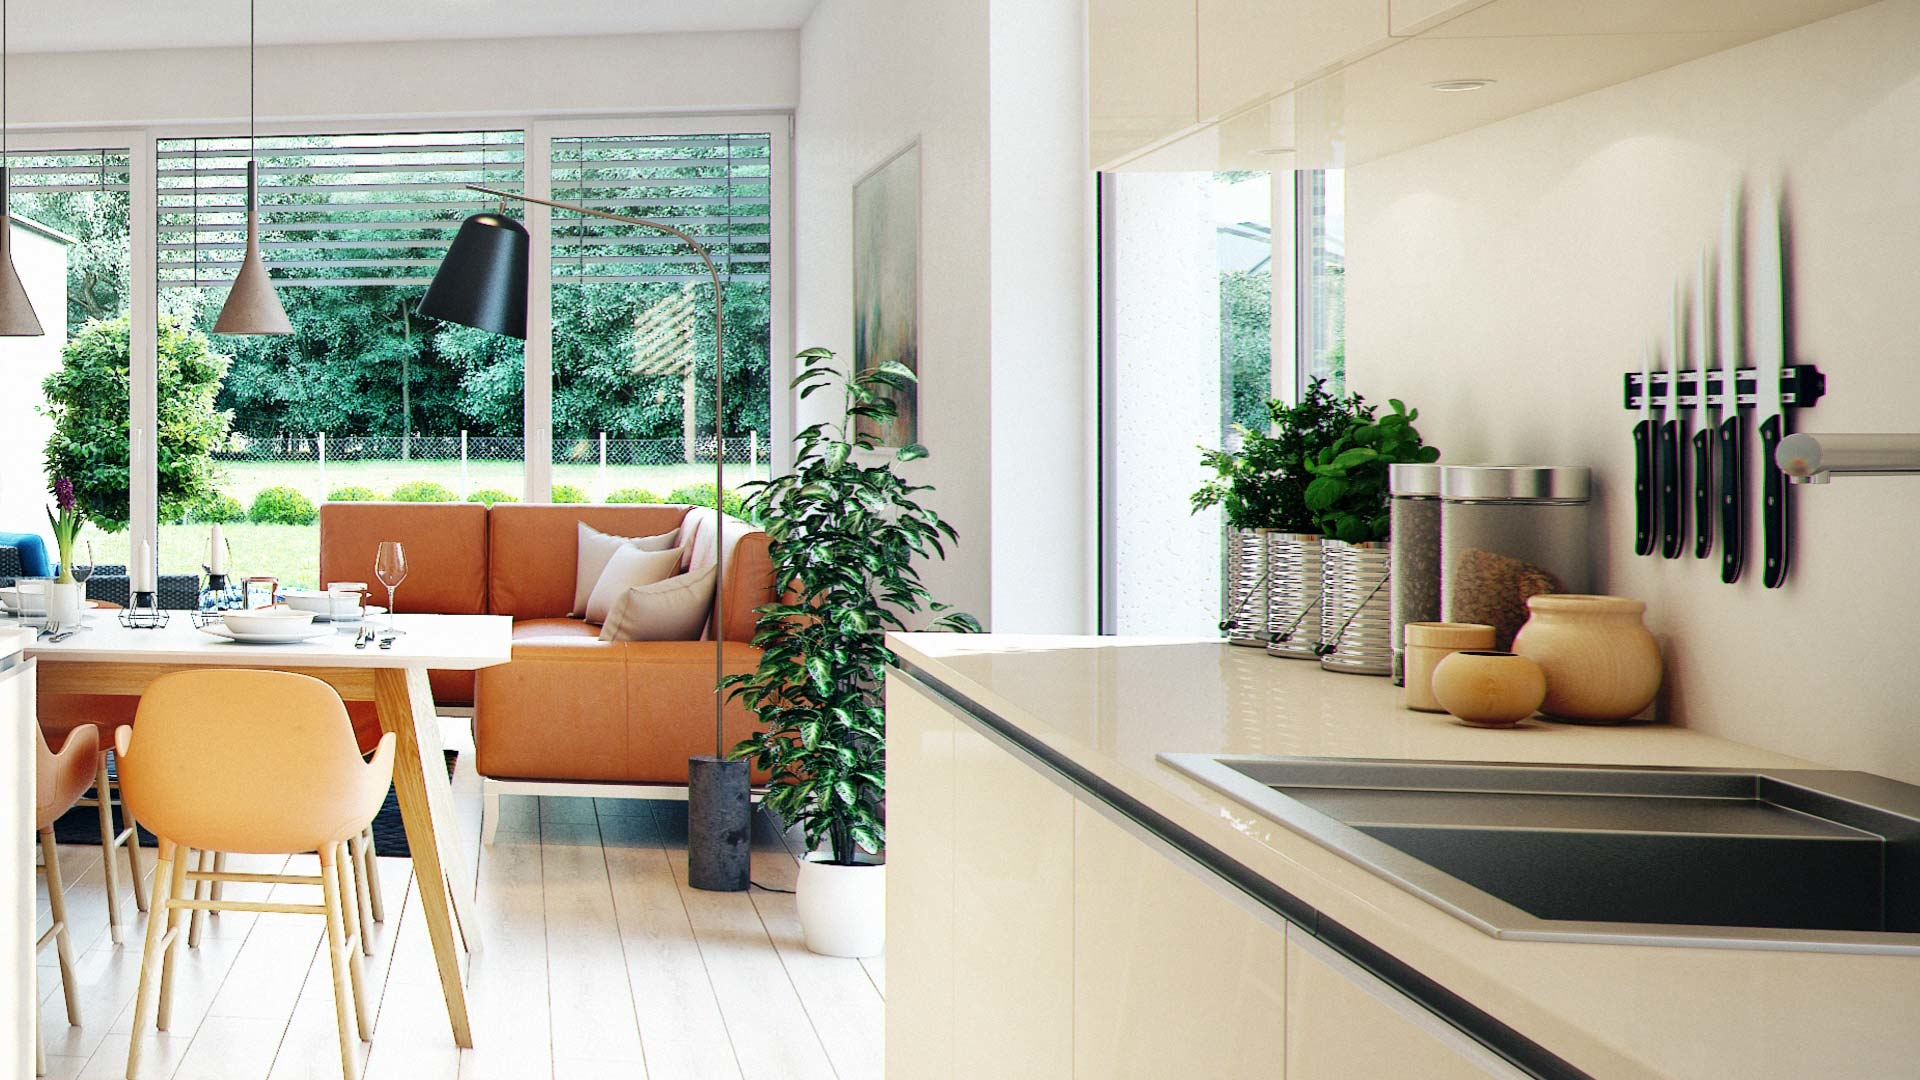 Linz twin house interior visualization detail of kitchen and living room